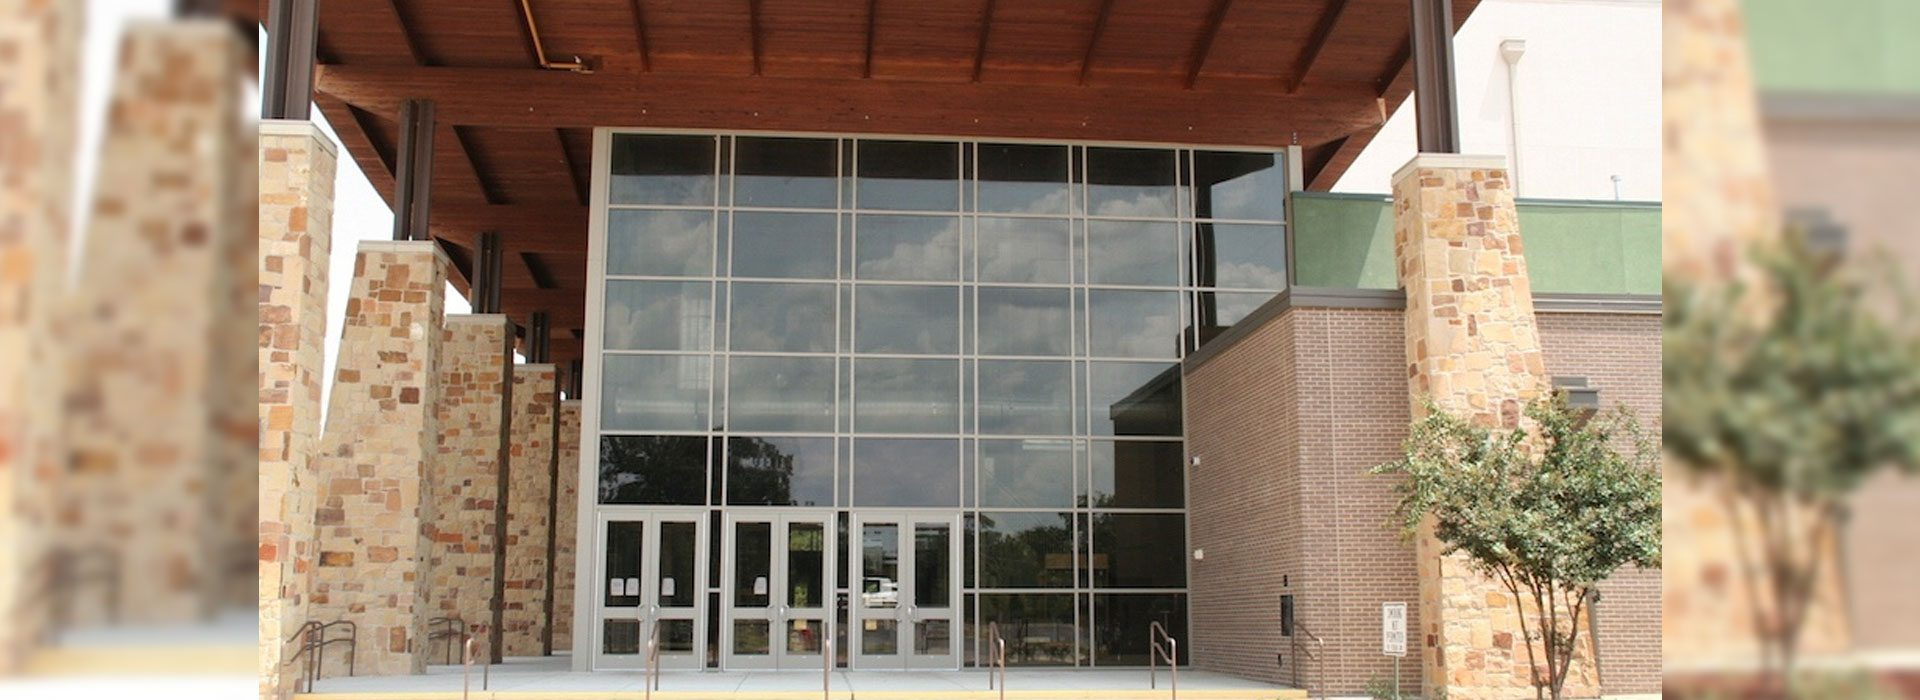 Commercial Storefronts | Commercial Products | Anchor-Ventana Glass